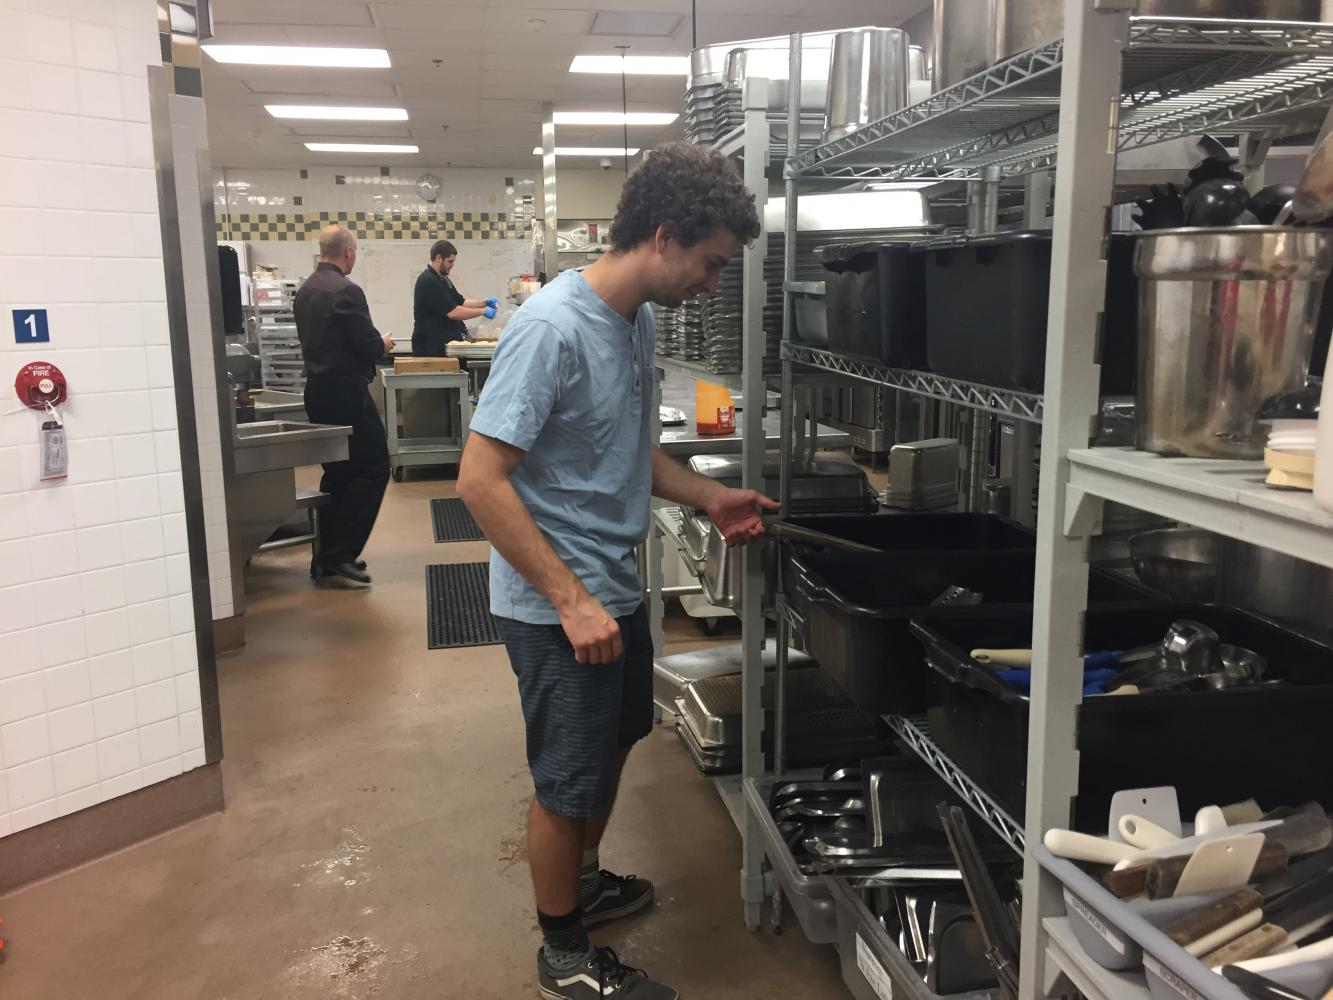 Reporter Alex Grant tours the dining hall kitchen Photo credit: Nicole Henson